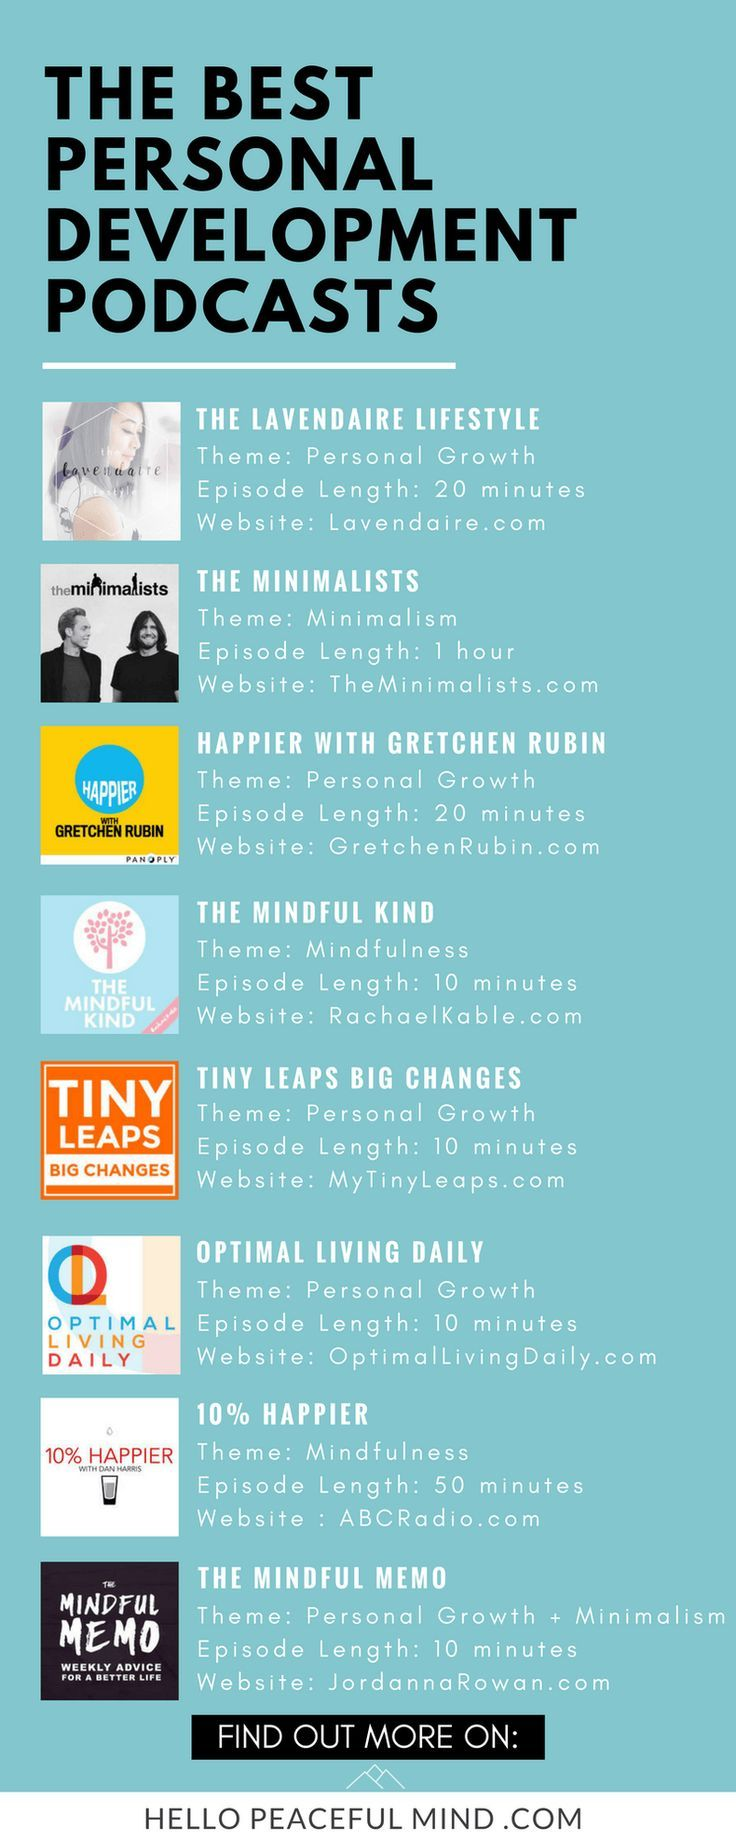 Best personal development podcasts for 2017. This list includes podcasts about mindfulness, personal growth, minimalism, happiness and more. Go to http://HelloPeacefulMind.com to get more details on each one of them!